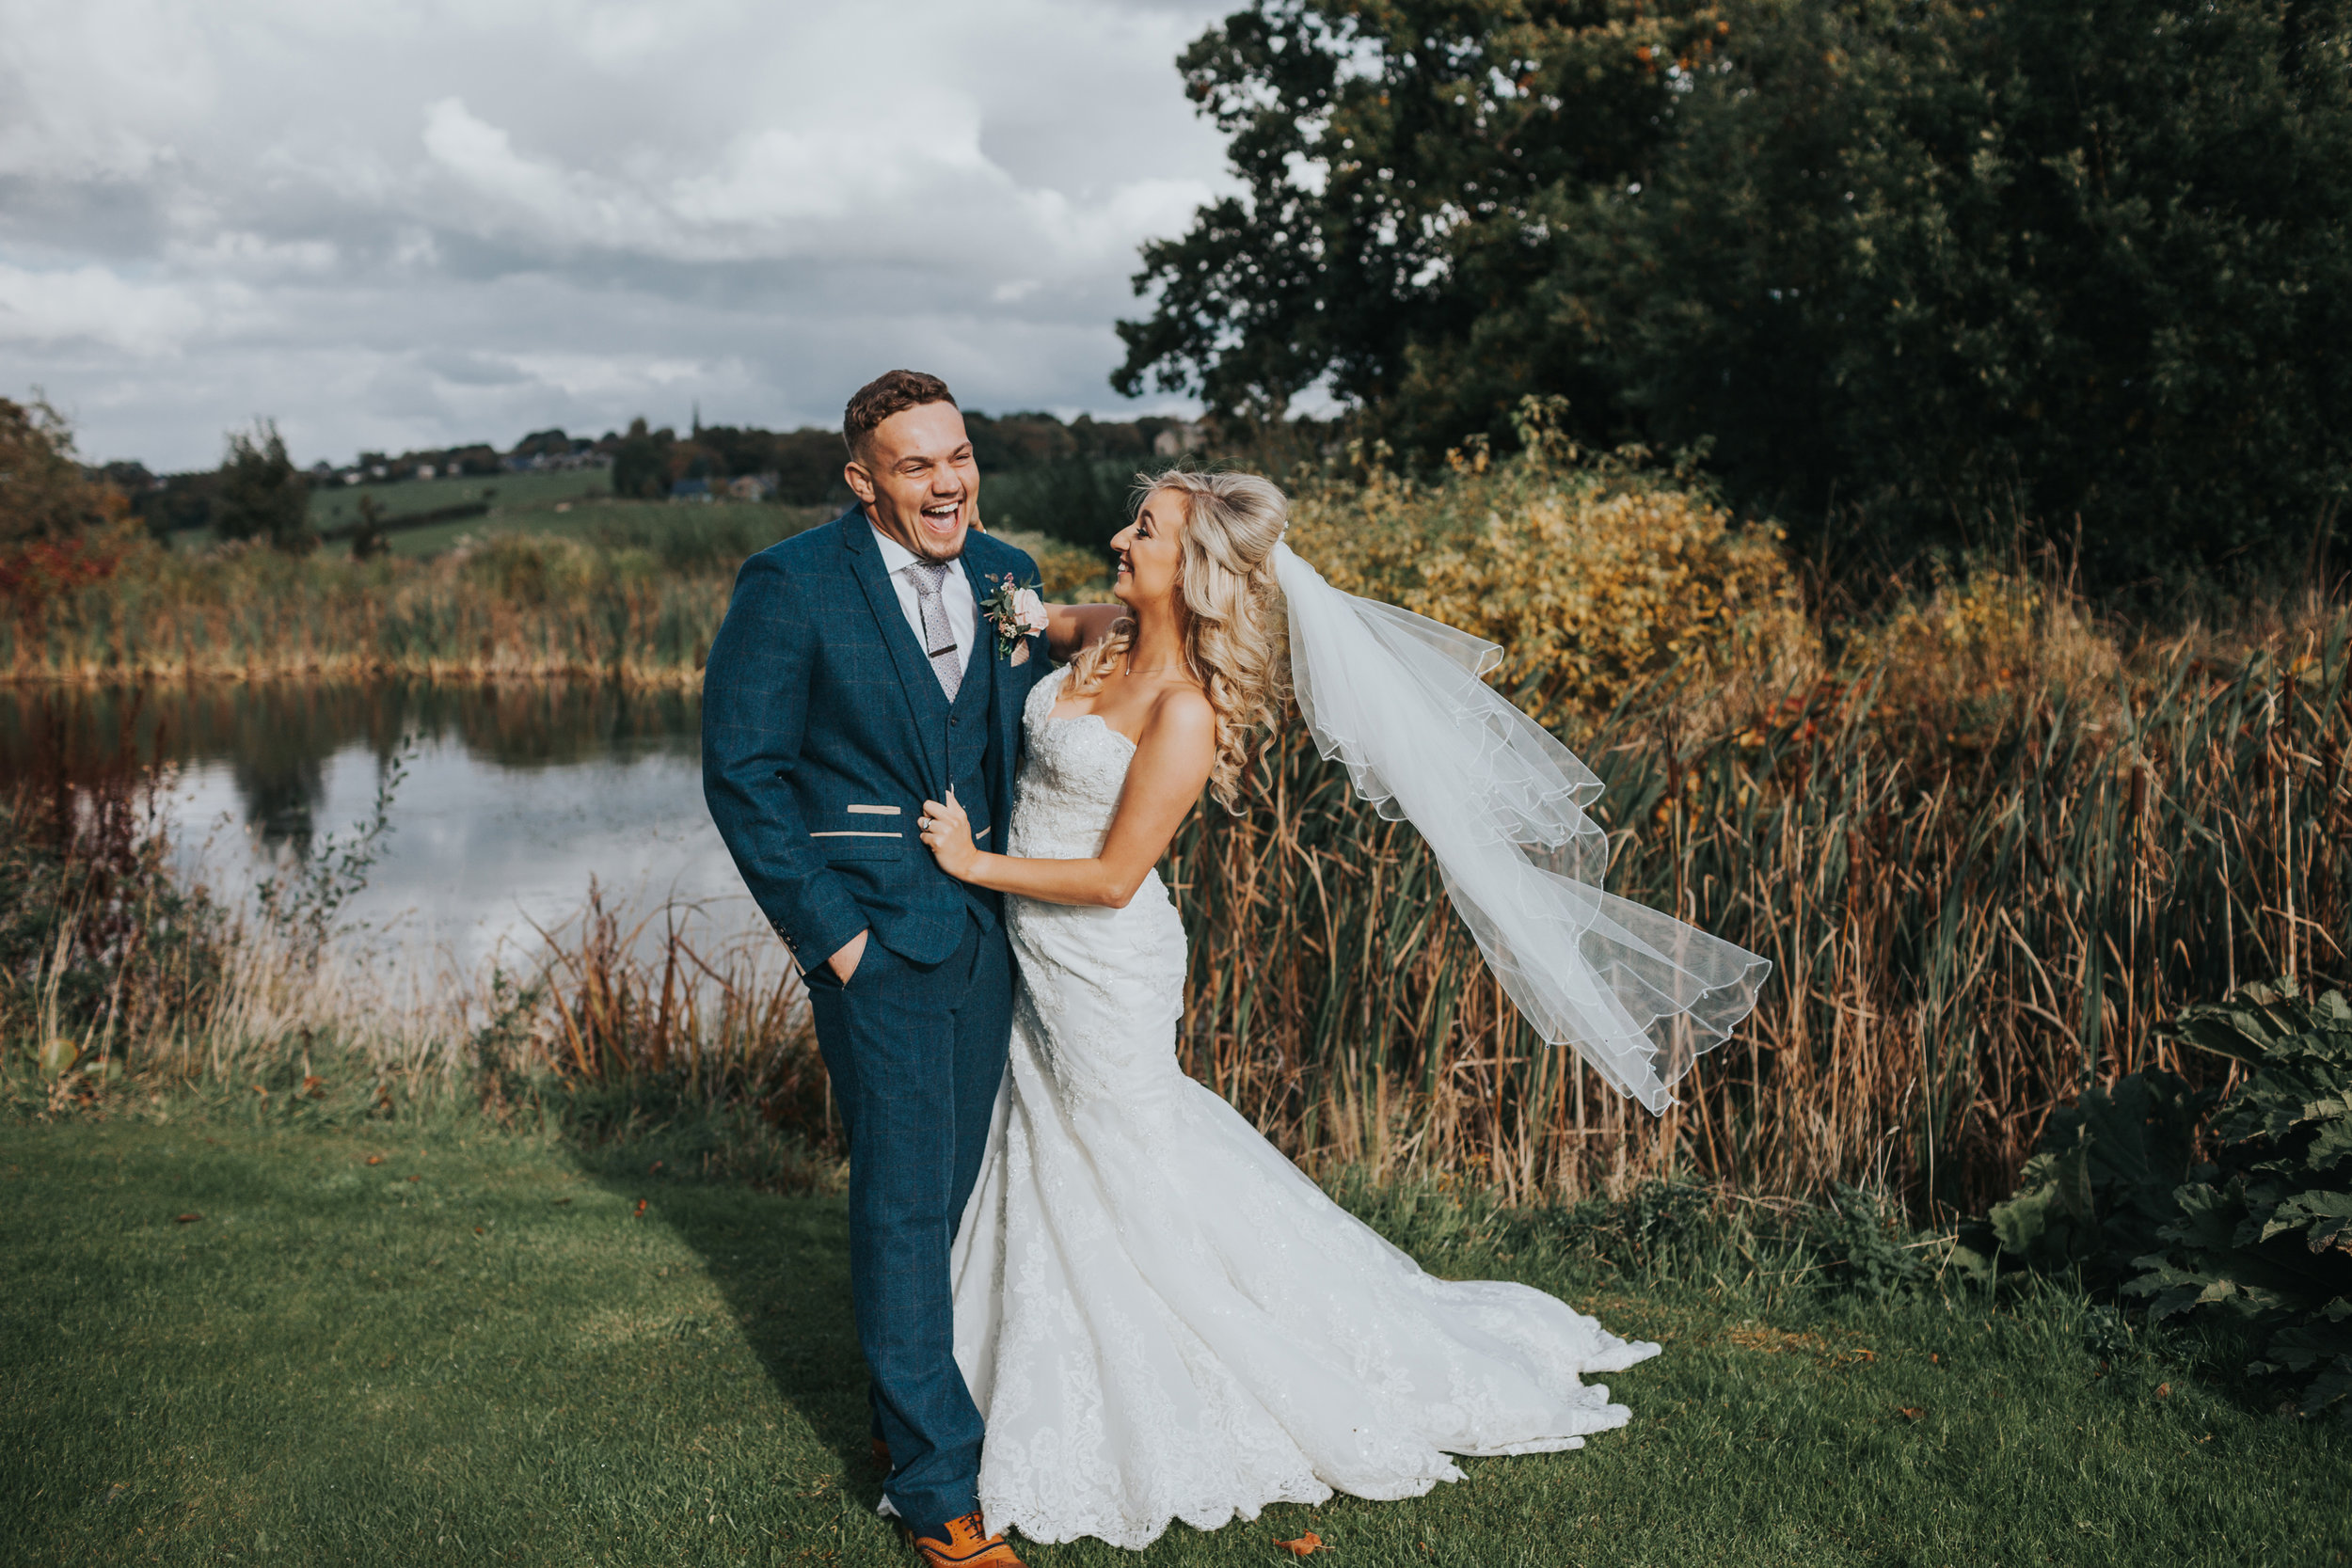 Bride and groom laugh together in front of pond.